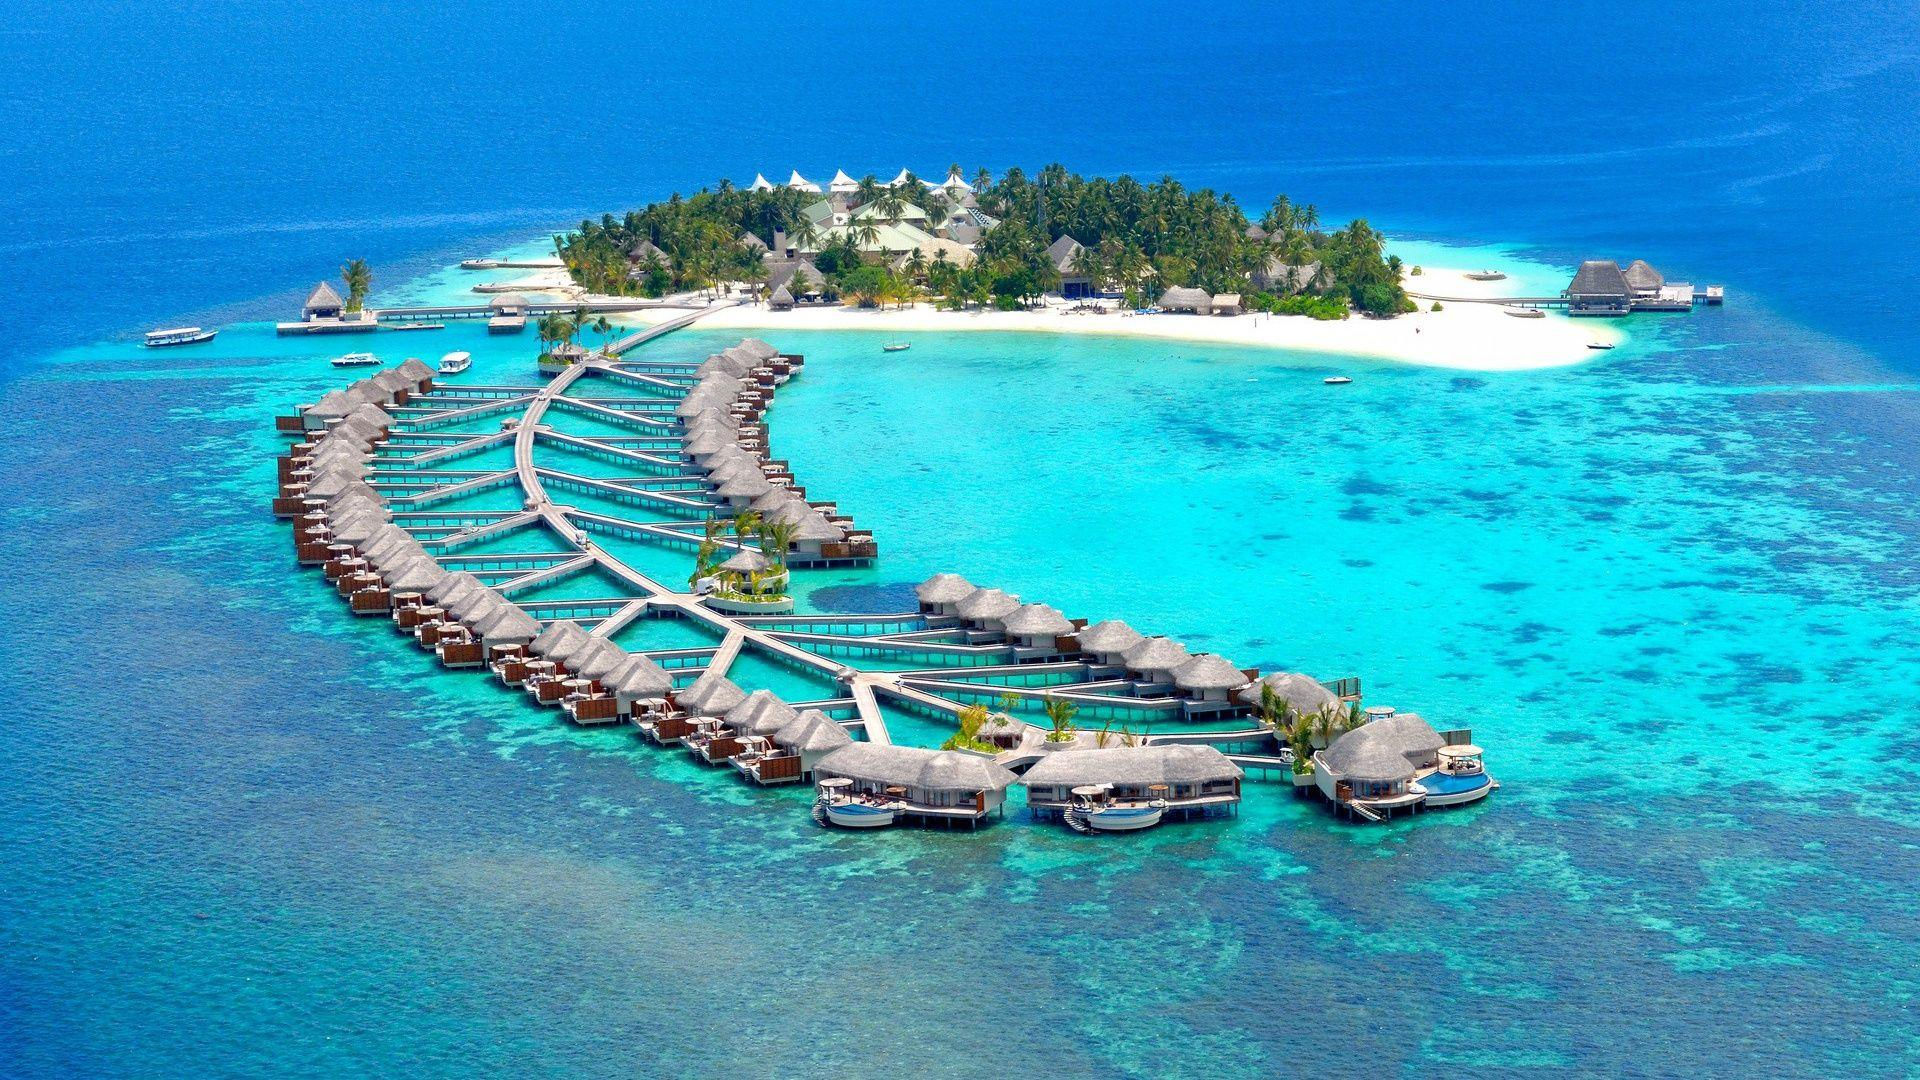 Beautiful Maldives Island Wallpaper Backgrounds